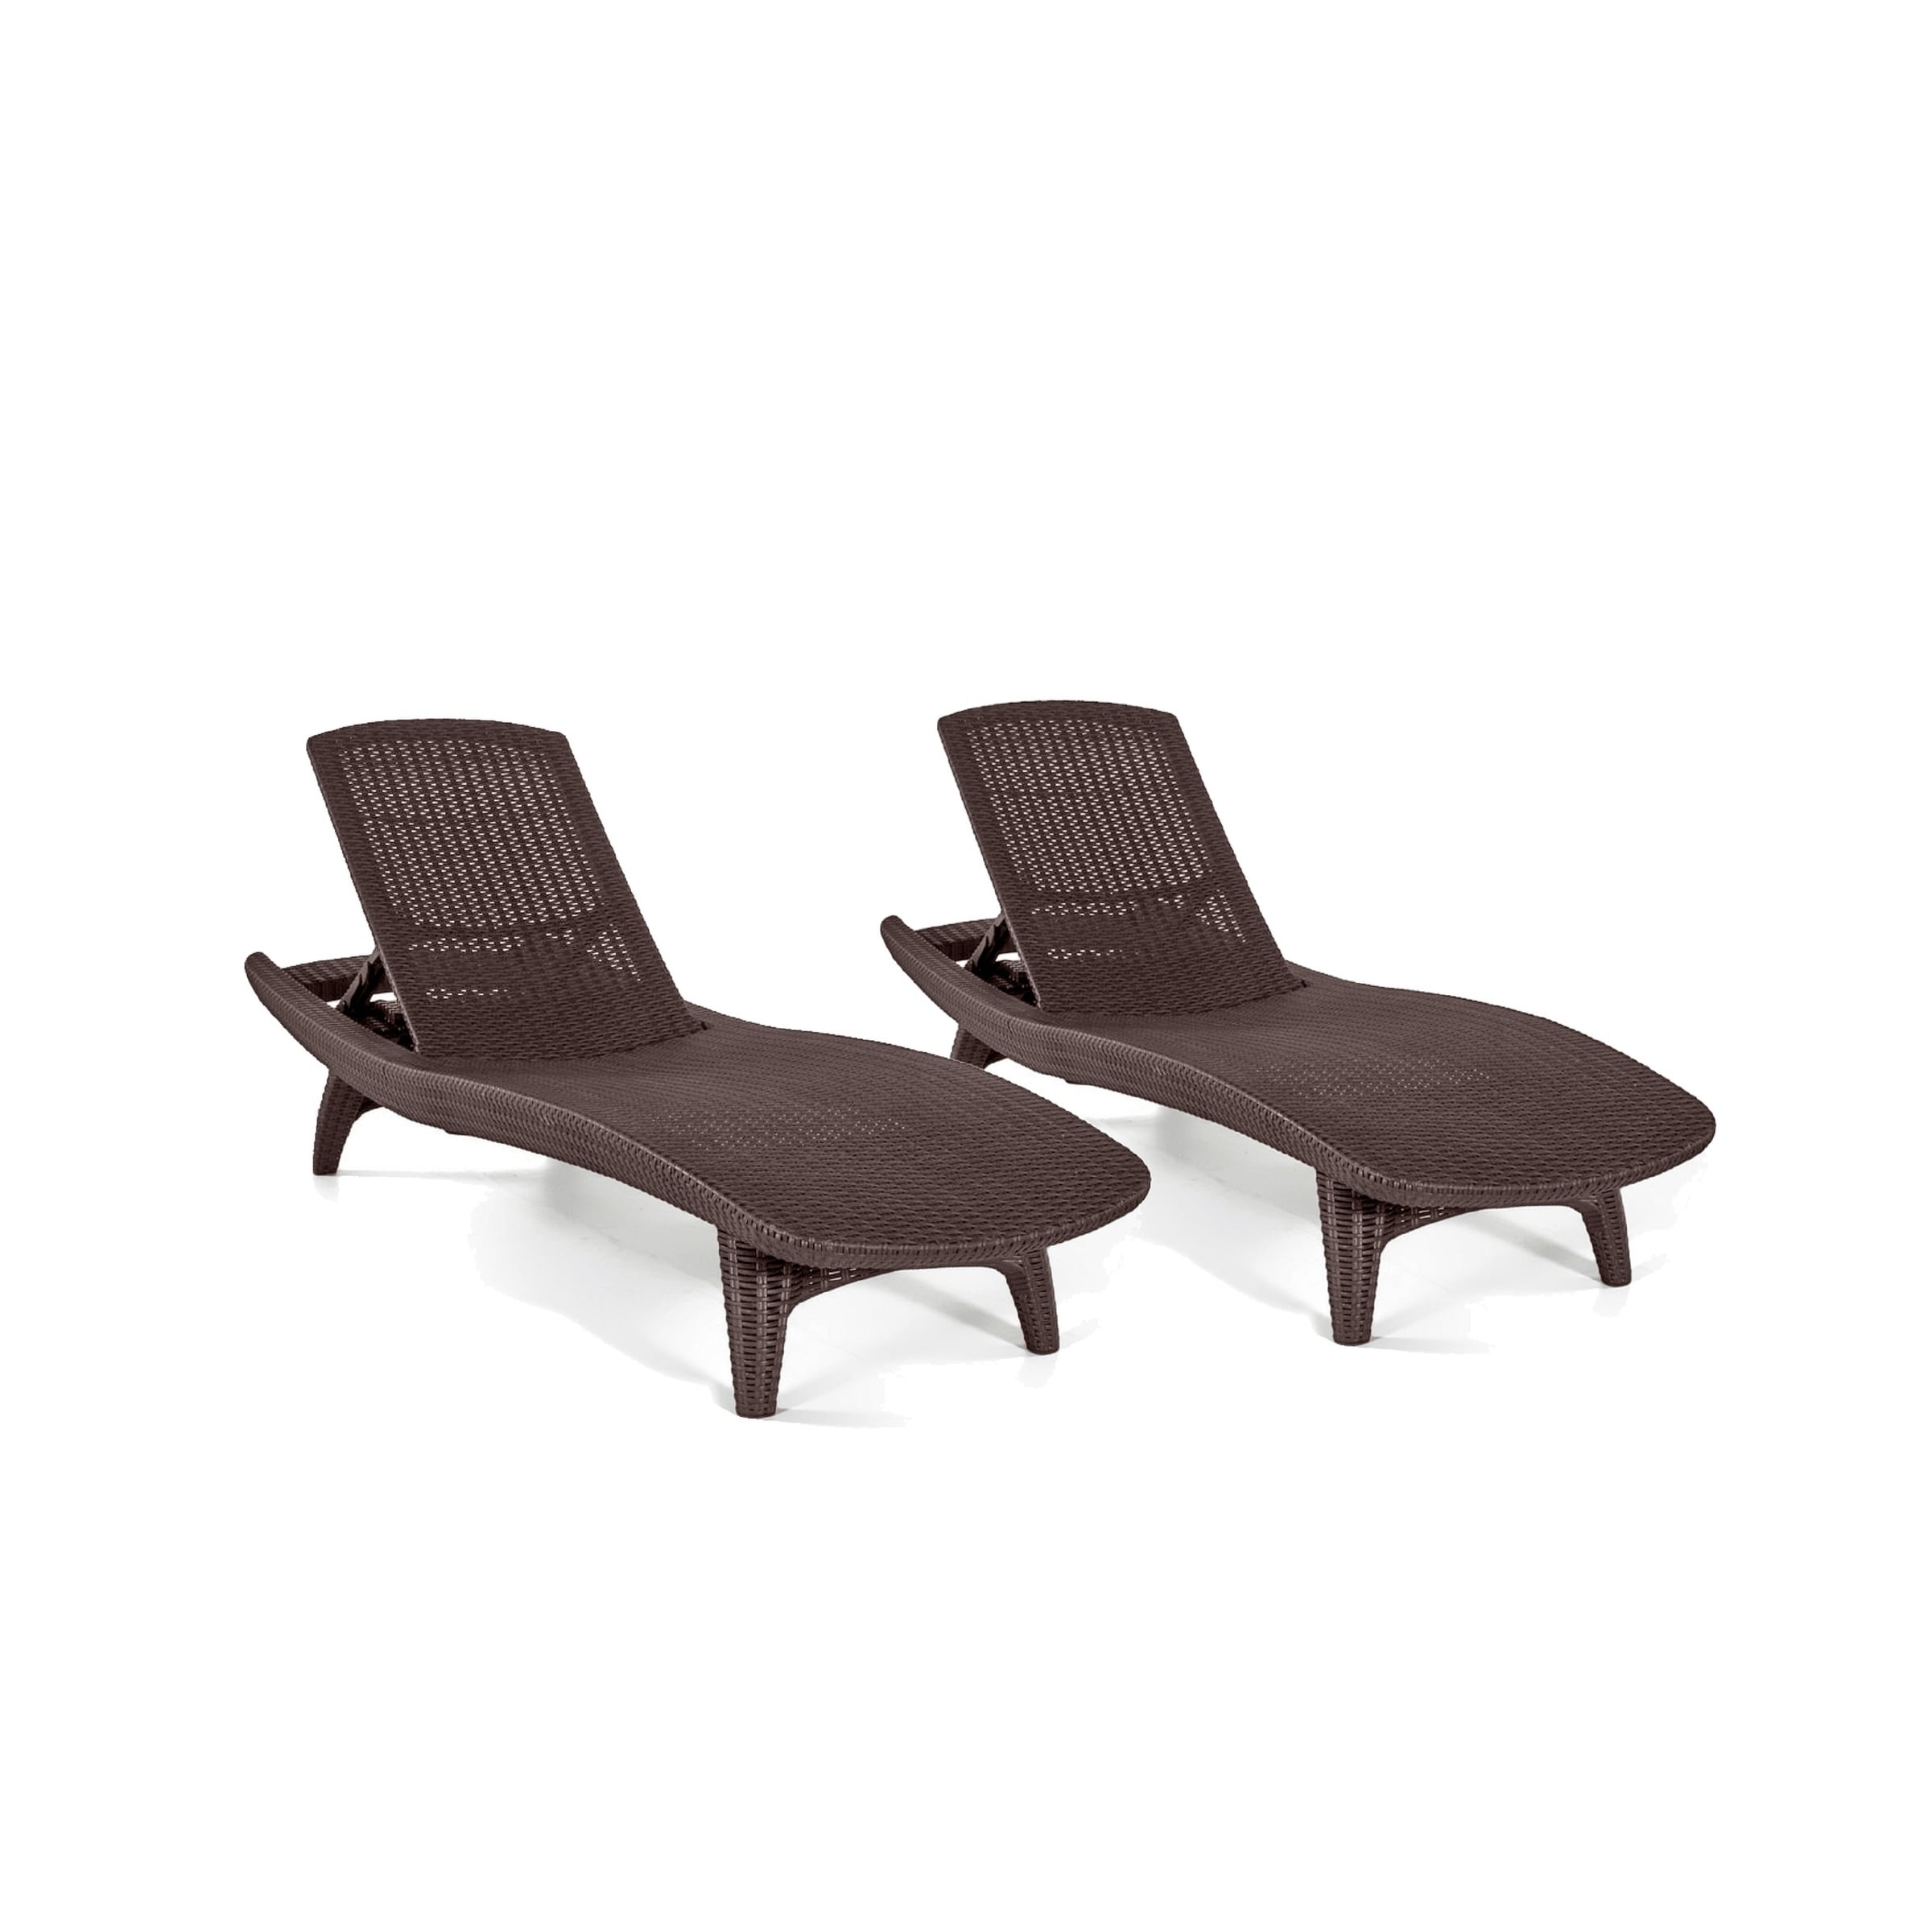 Keter Pacific All Weather Outdoor Patio Brown Chaise Lounge (Set Regarding Well Liked Keter Chaise Lounge Chairs (View 11 of 15)